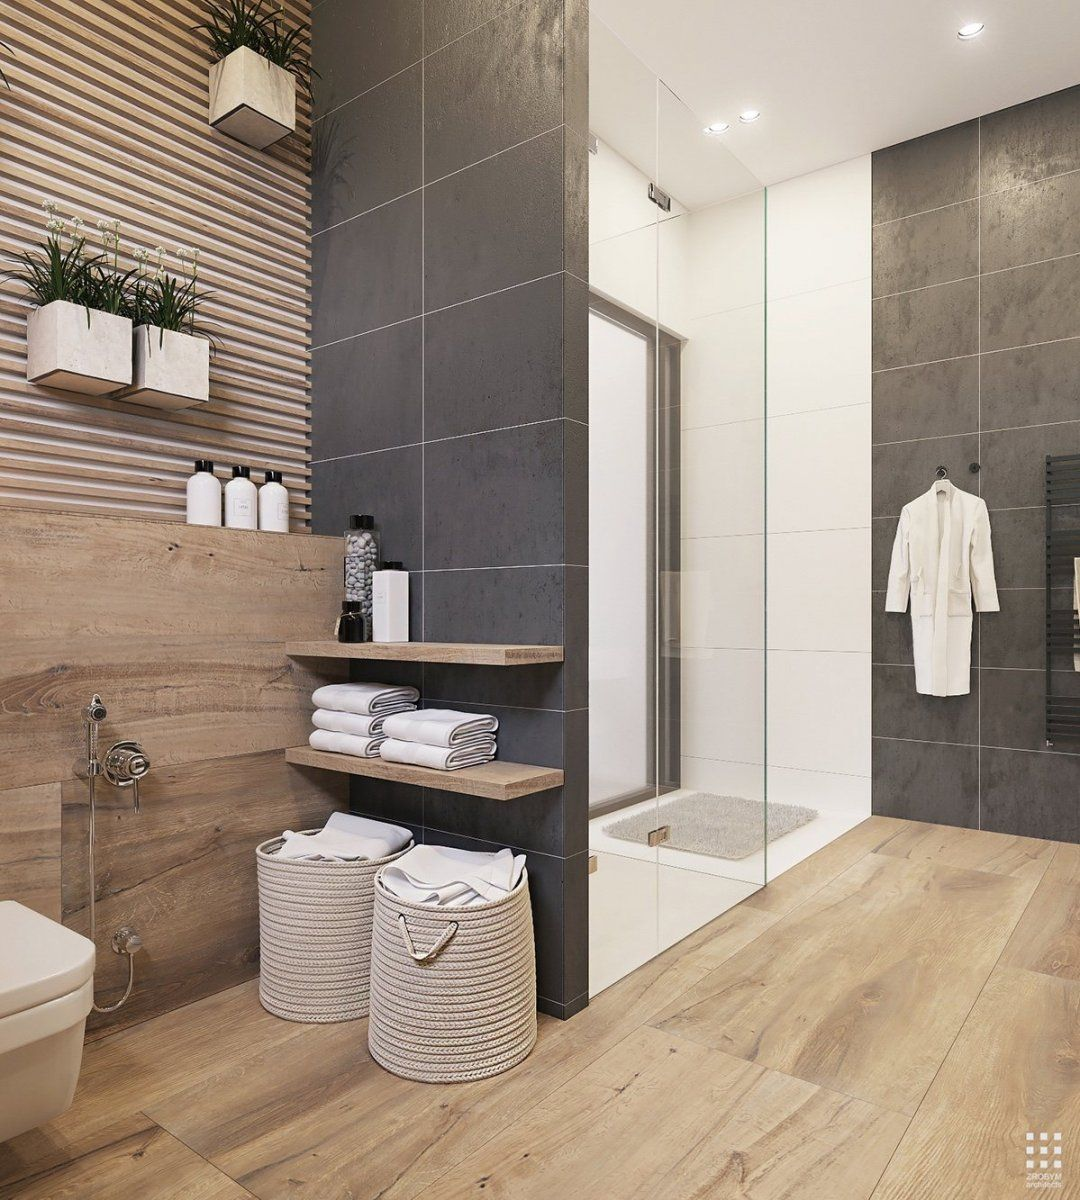 Mariwasa Floor Tiles 16x16 Price Wood And Dark Grey Bathroom